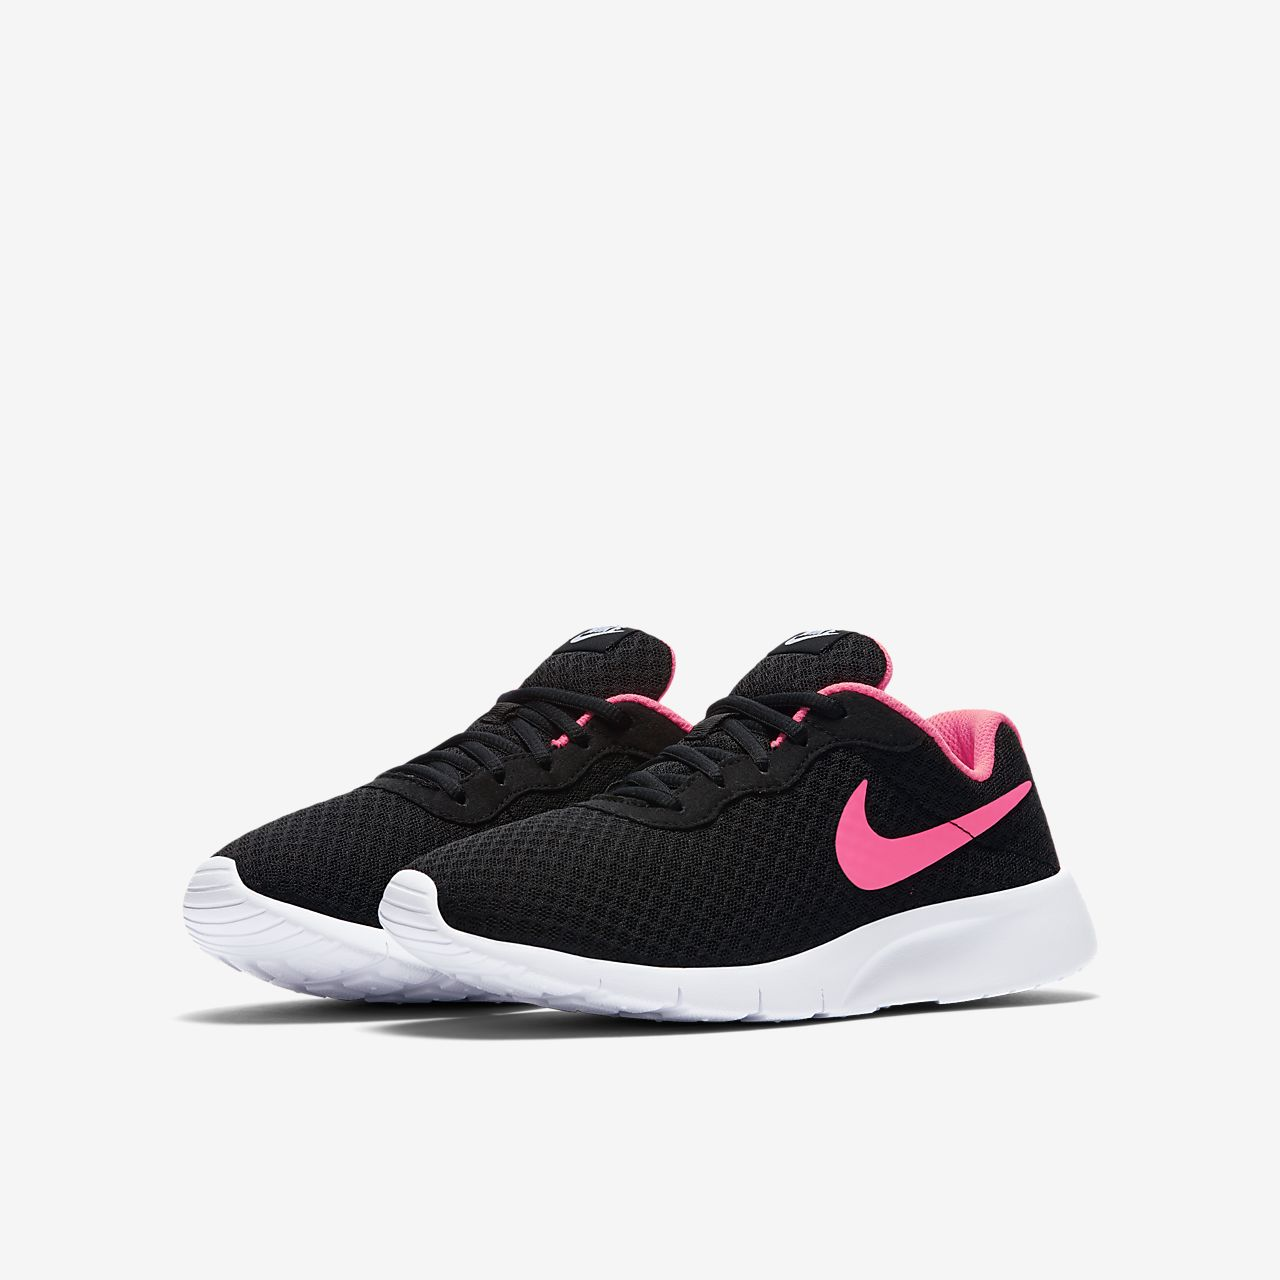 nike tanjun shoes nz nz